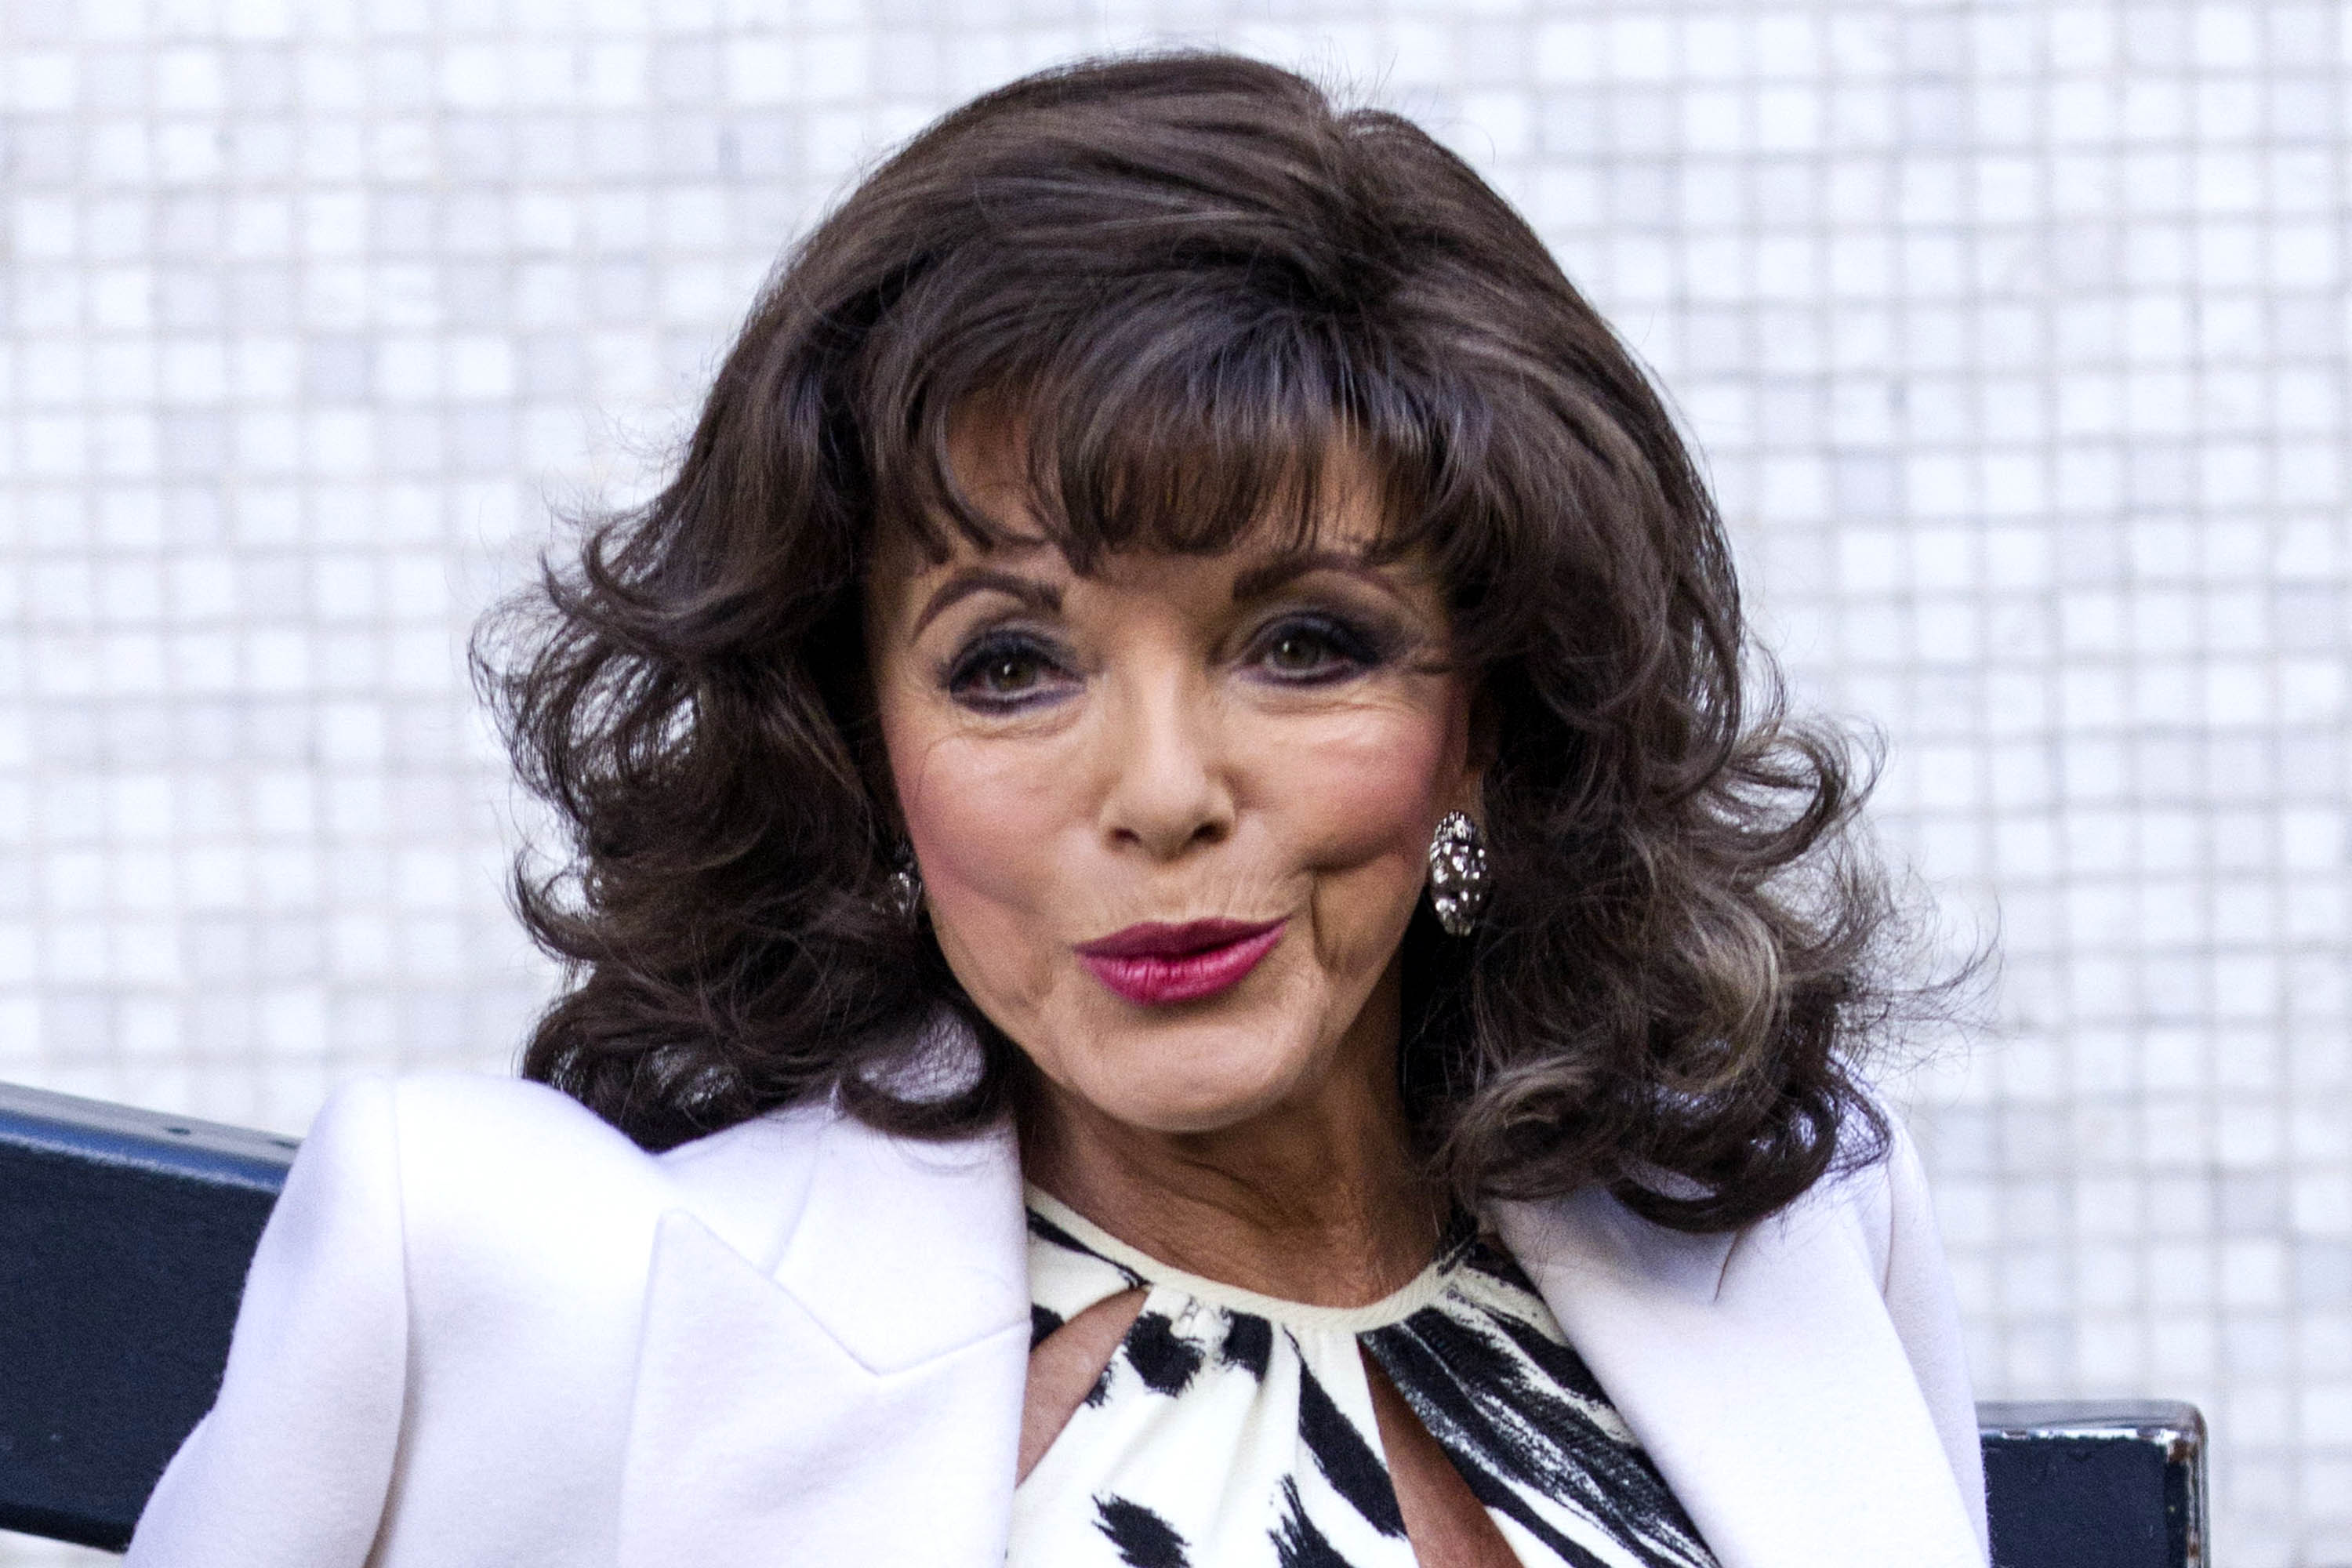 Joan Collins arriving at the ITV studios, London.